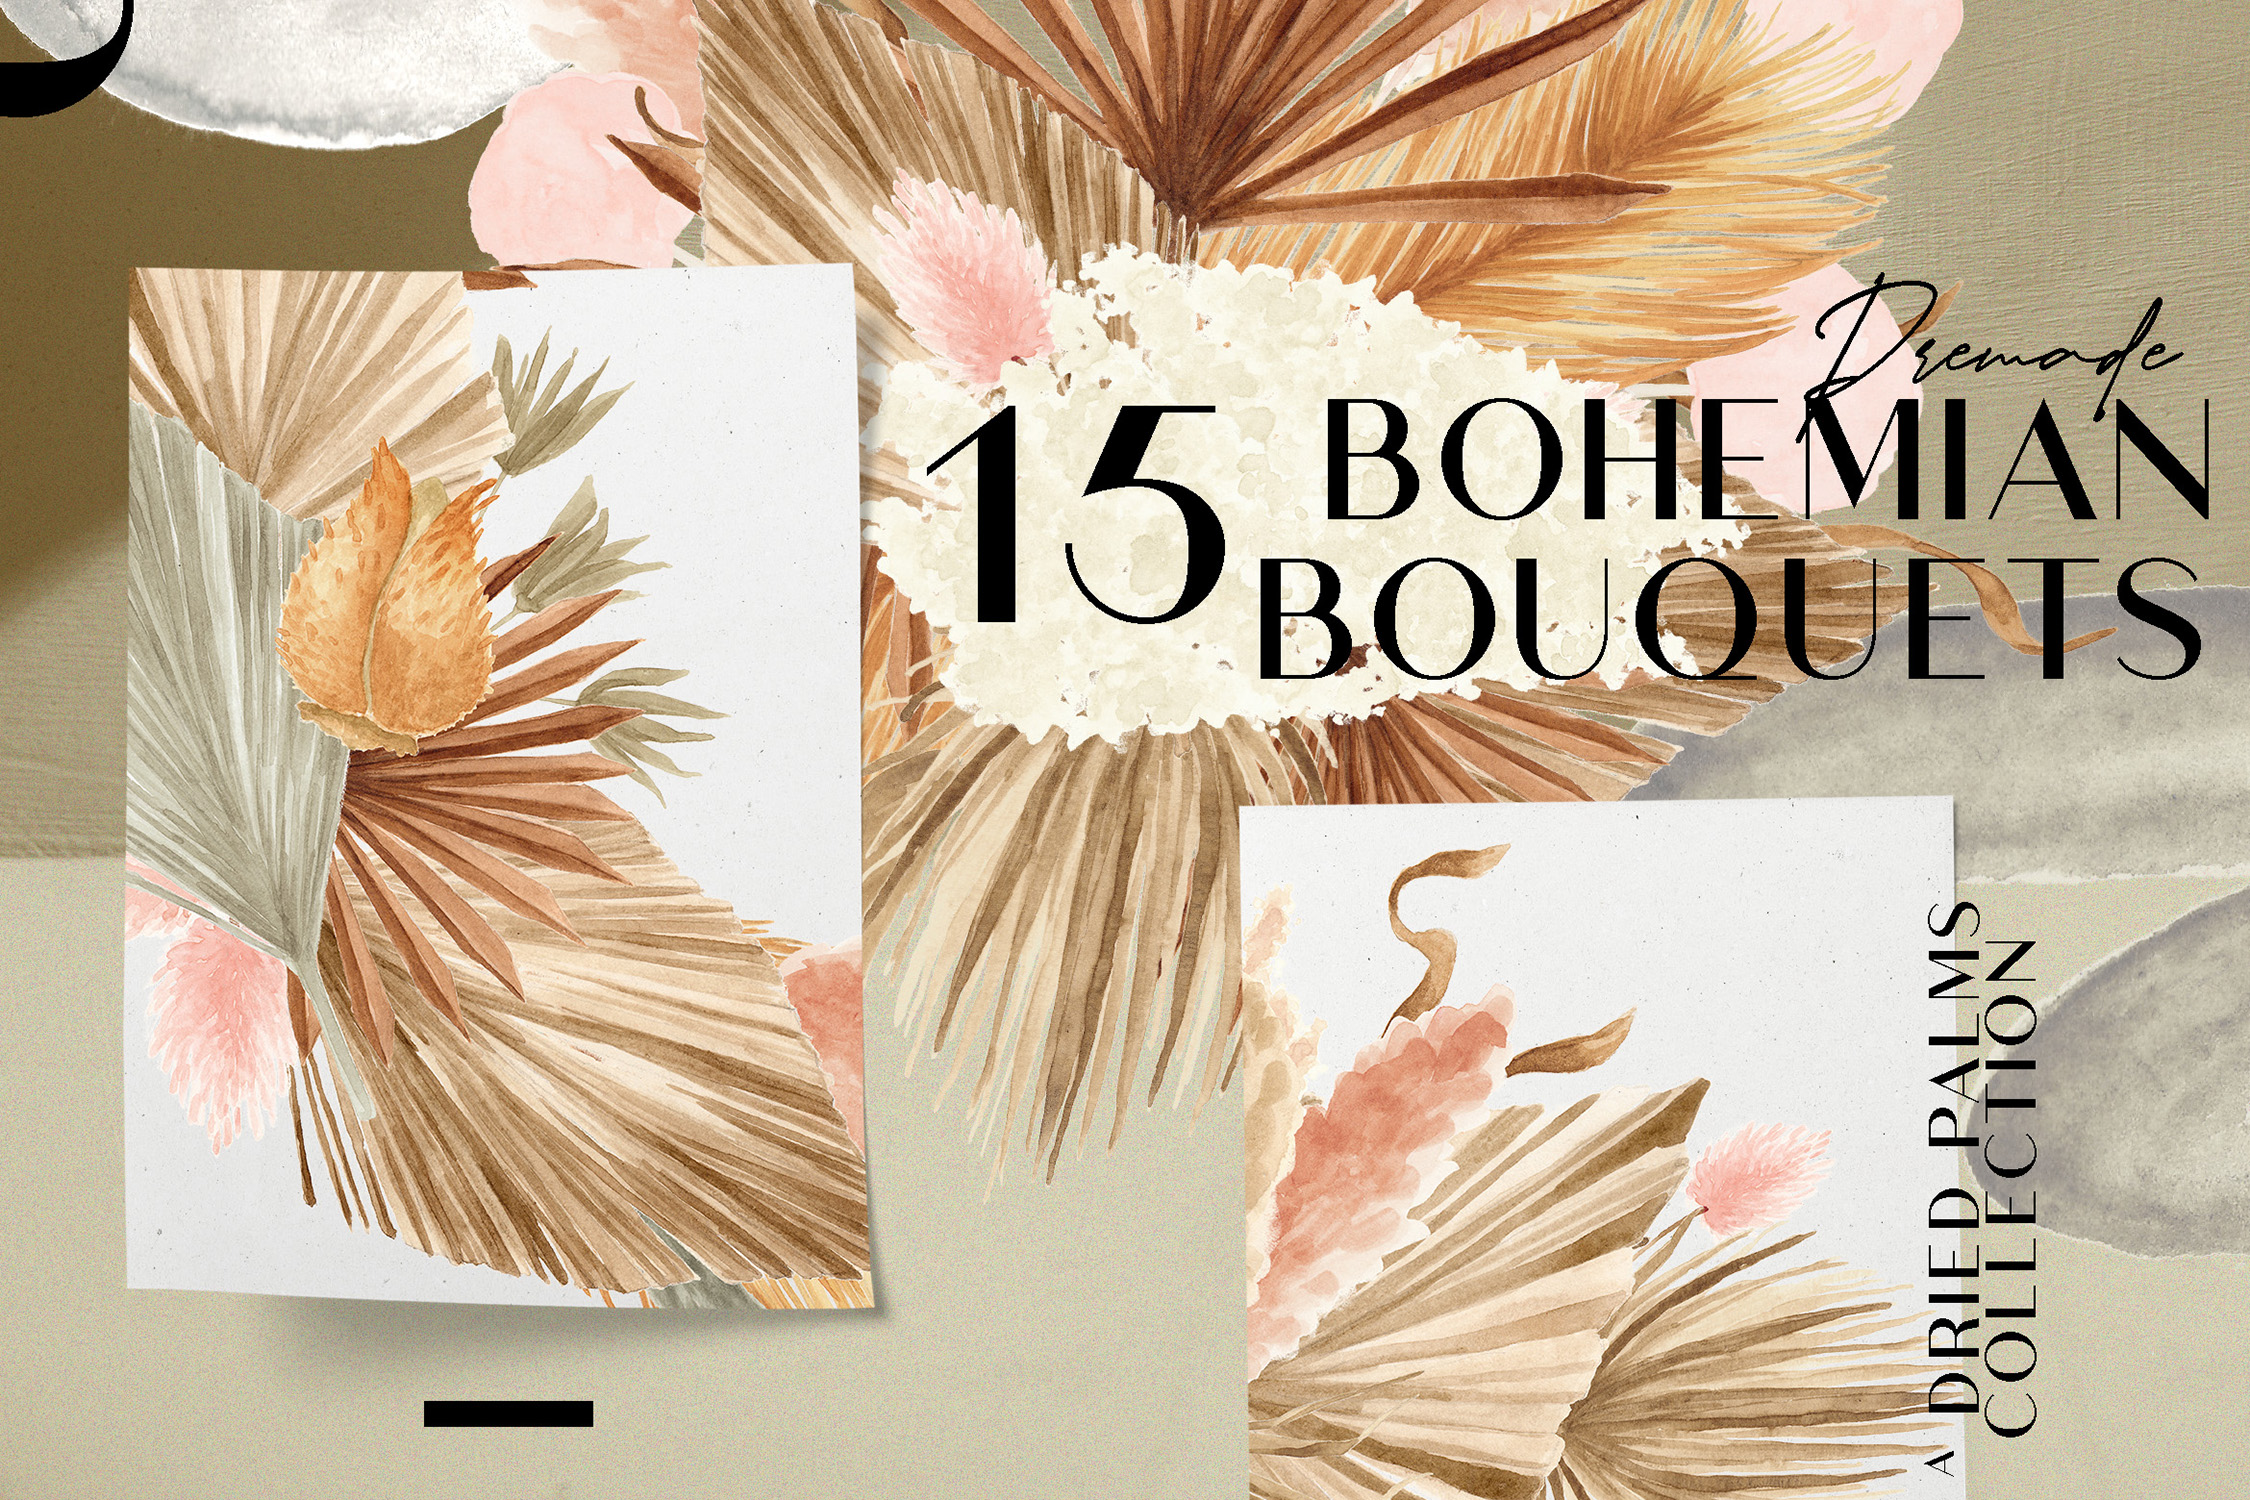 Bohemian Dried Foliage Illustration